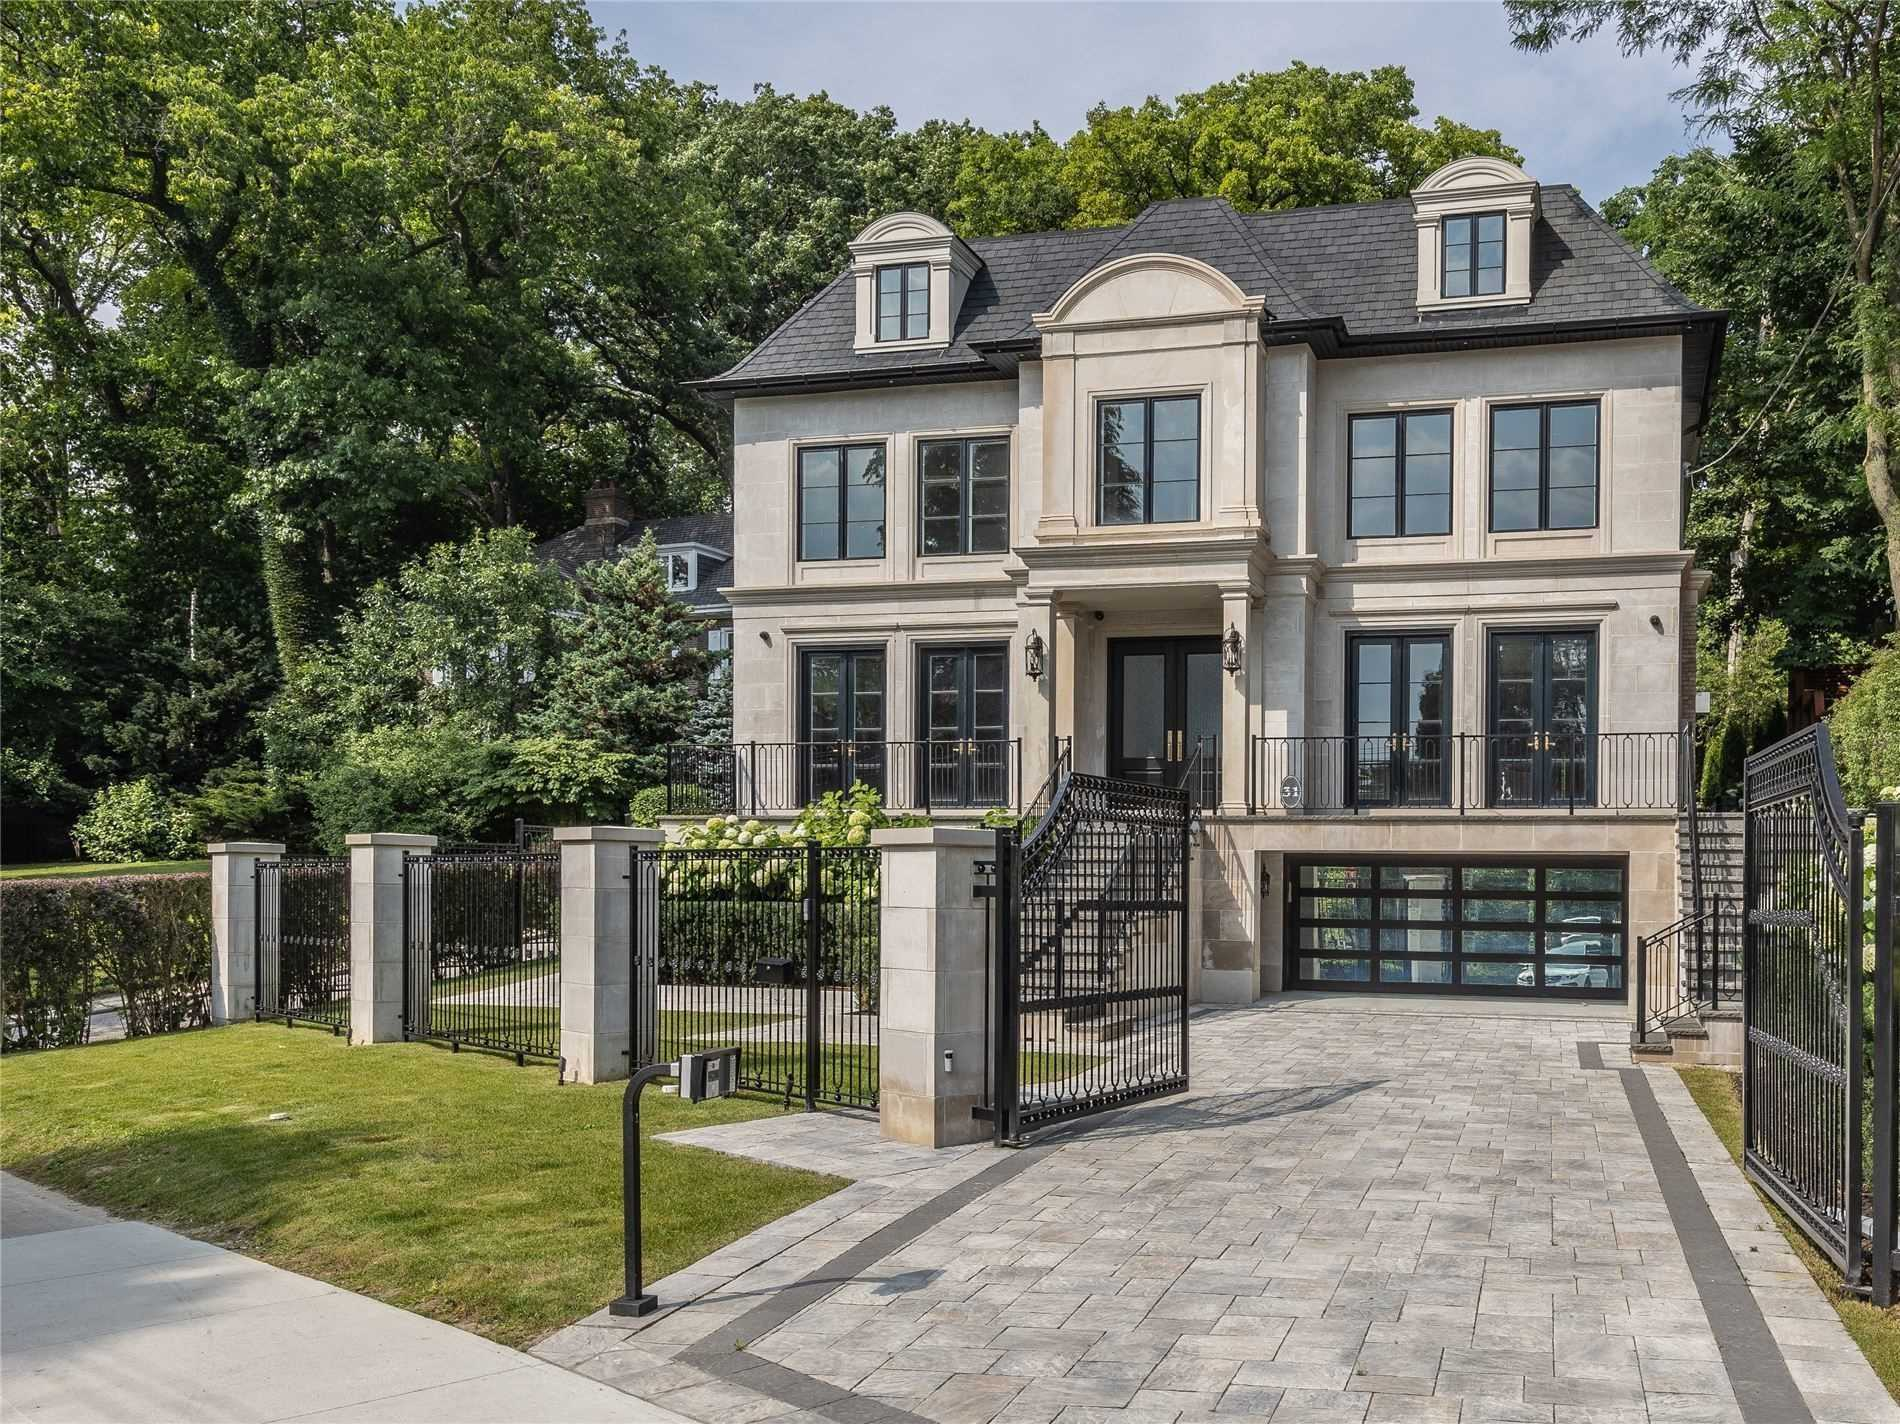 31 Russell Hill Rd, Toronto, Ontario M4V2S9, 6 Bedrooms Bedrooms, 14 Rooms Rooms,9 BathroomsBathrooms,Detached,For Sale,Russell Hill,C5373632